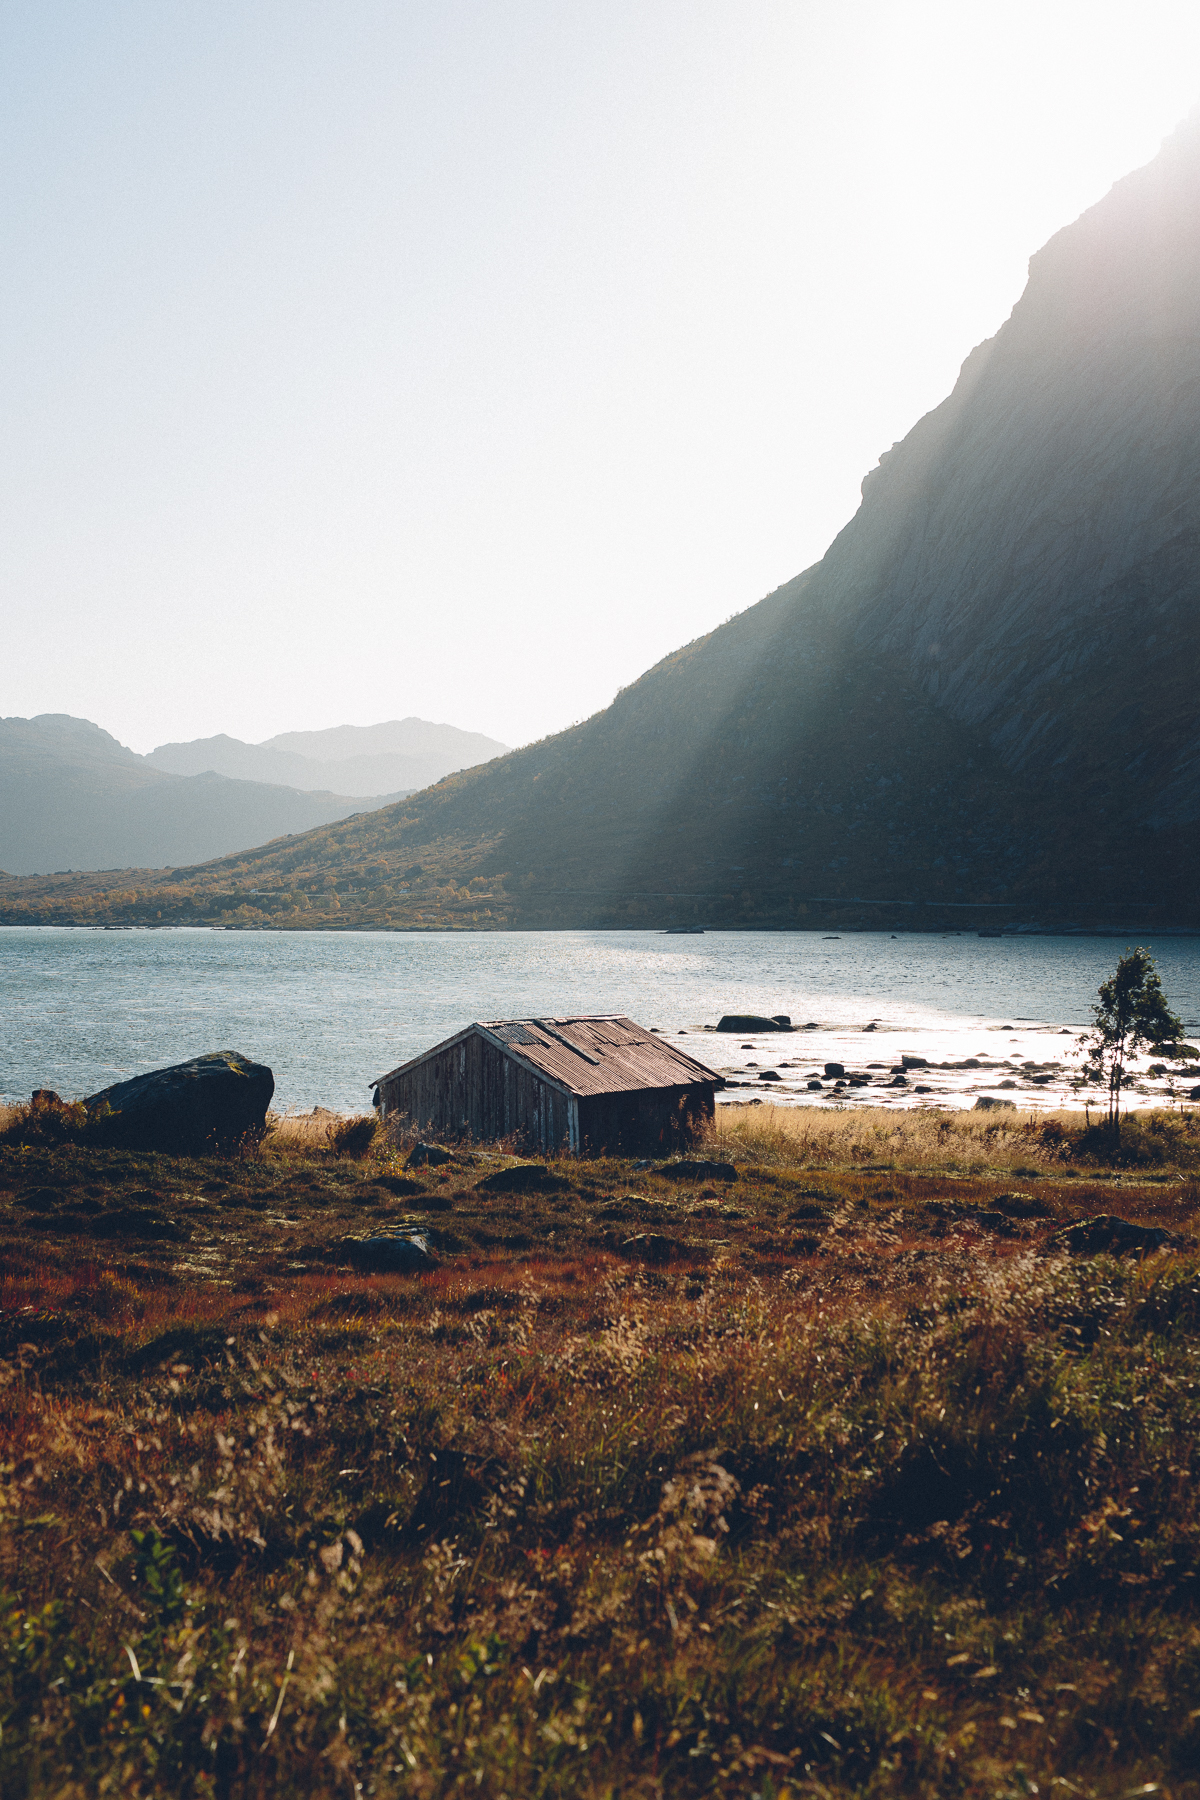 Lofoten, Norway, September 2017